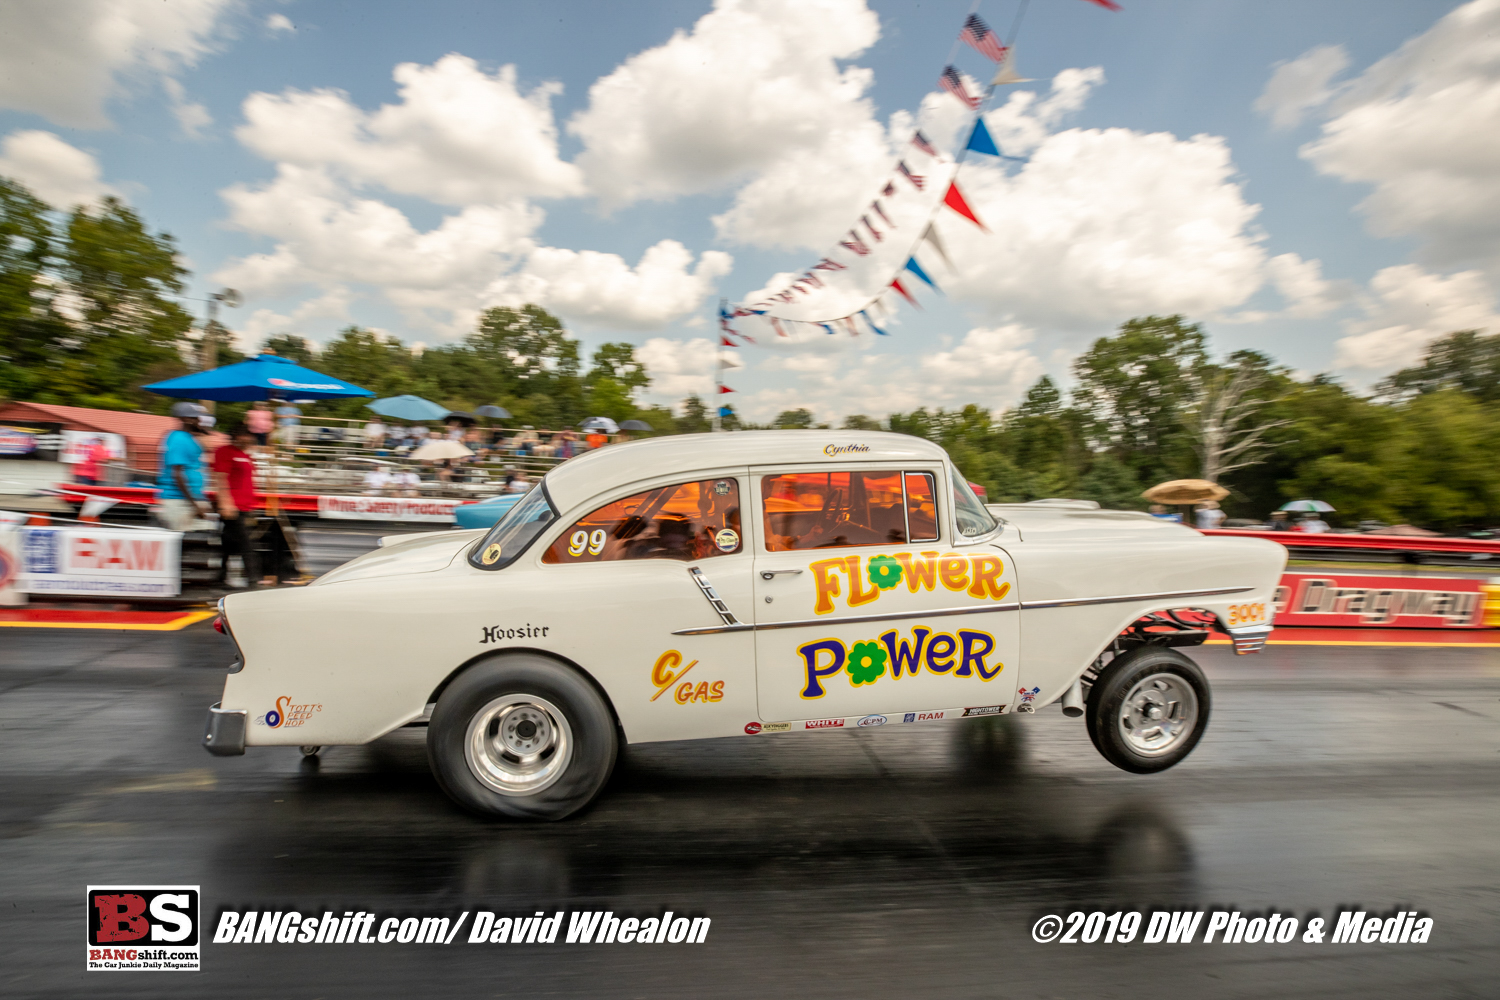 Southeast Gassers Action Coverage: The Old School, Gear-Banging Heroes Invaded Mooresville Dragway!